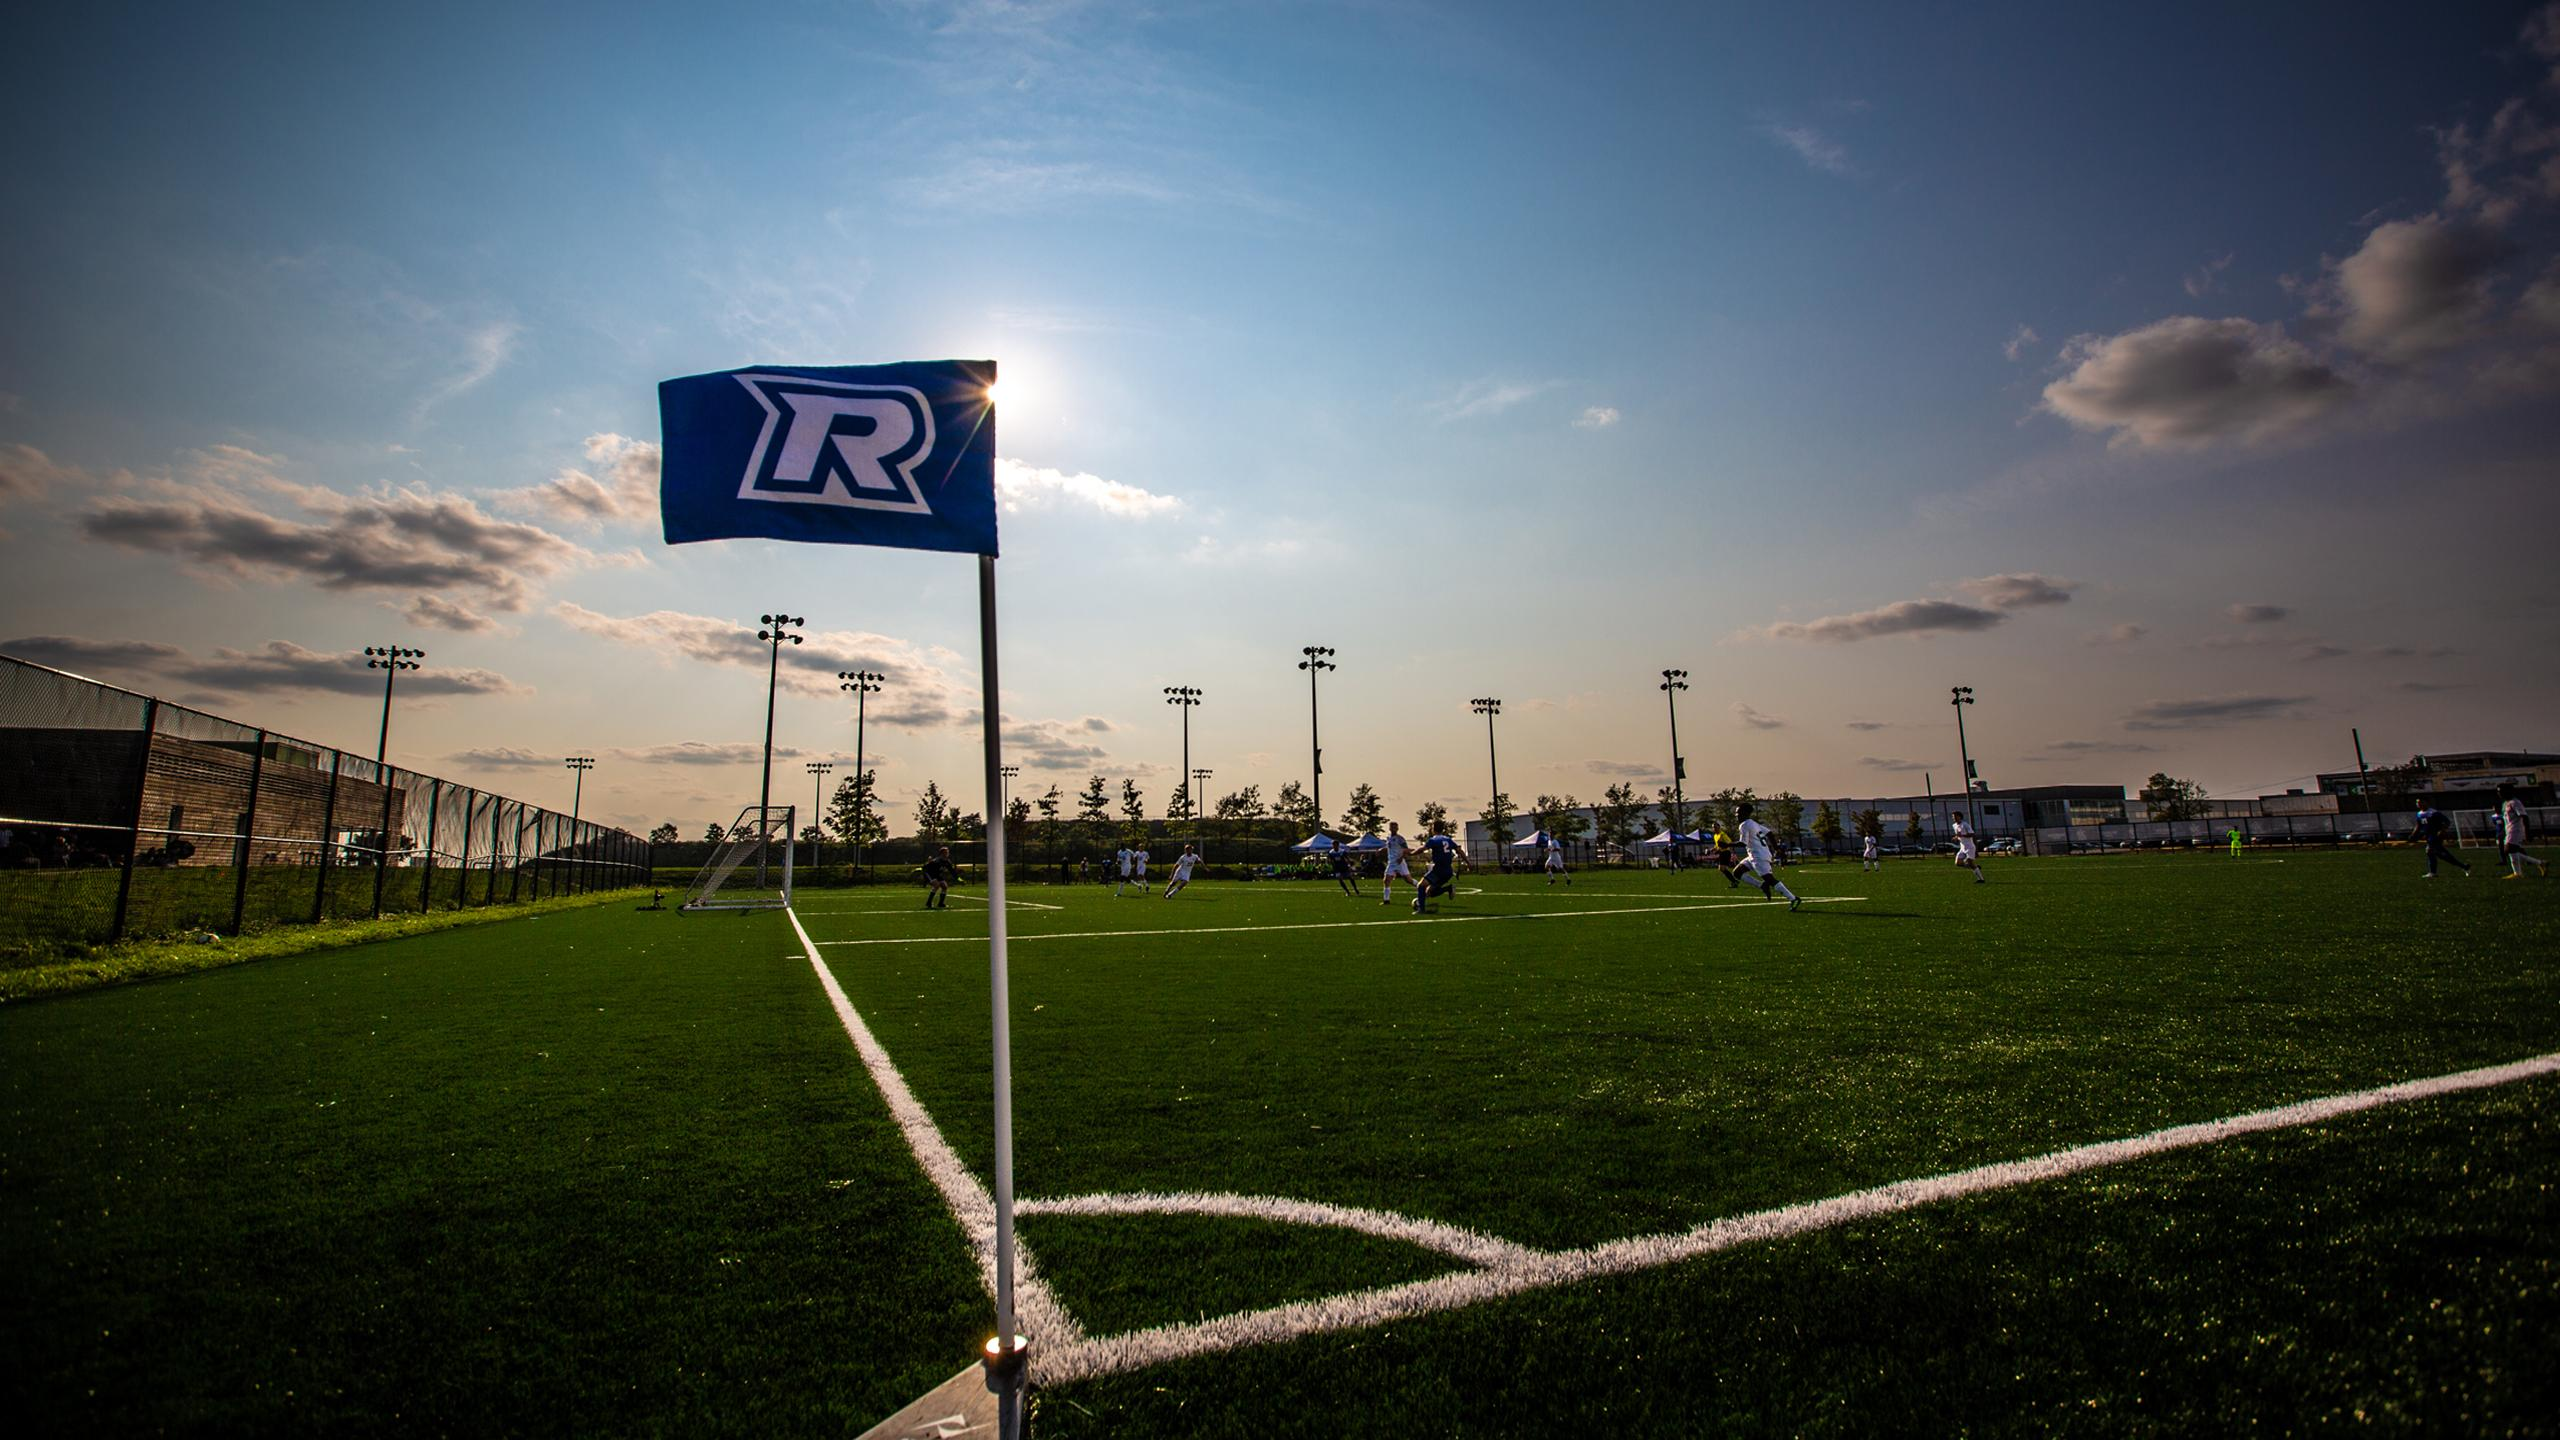 Ryerson soccer has finally found a home, but at what cost